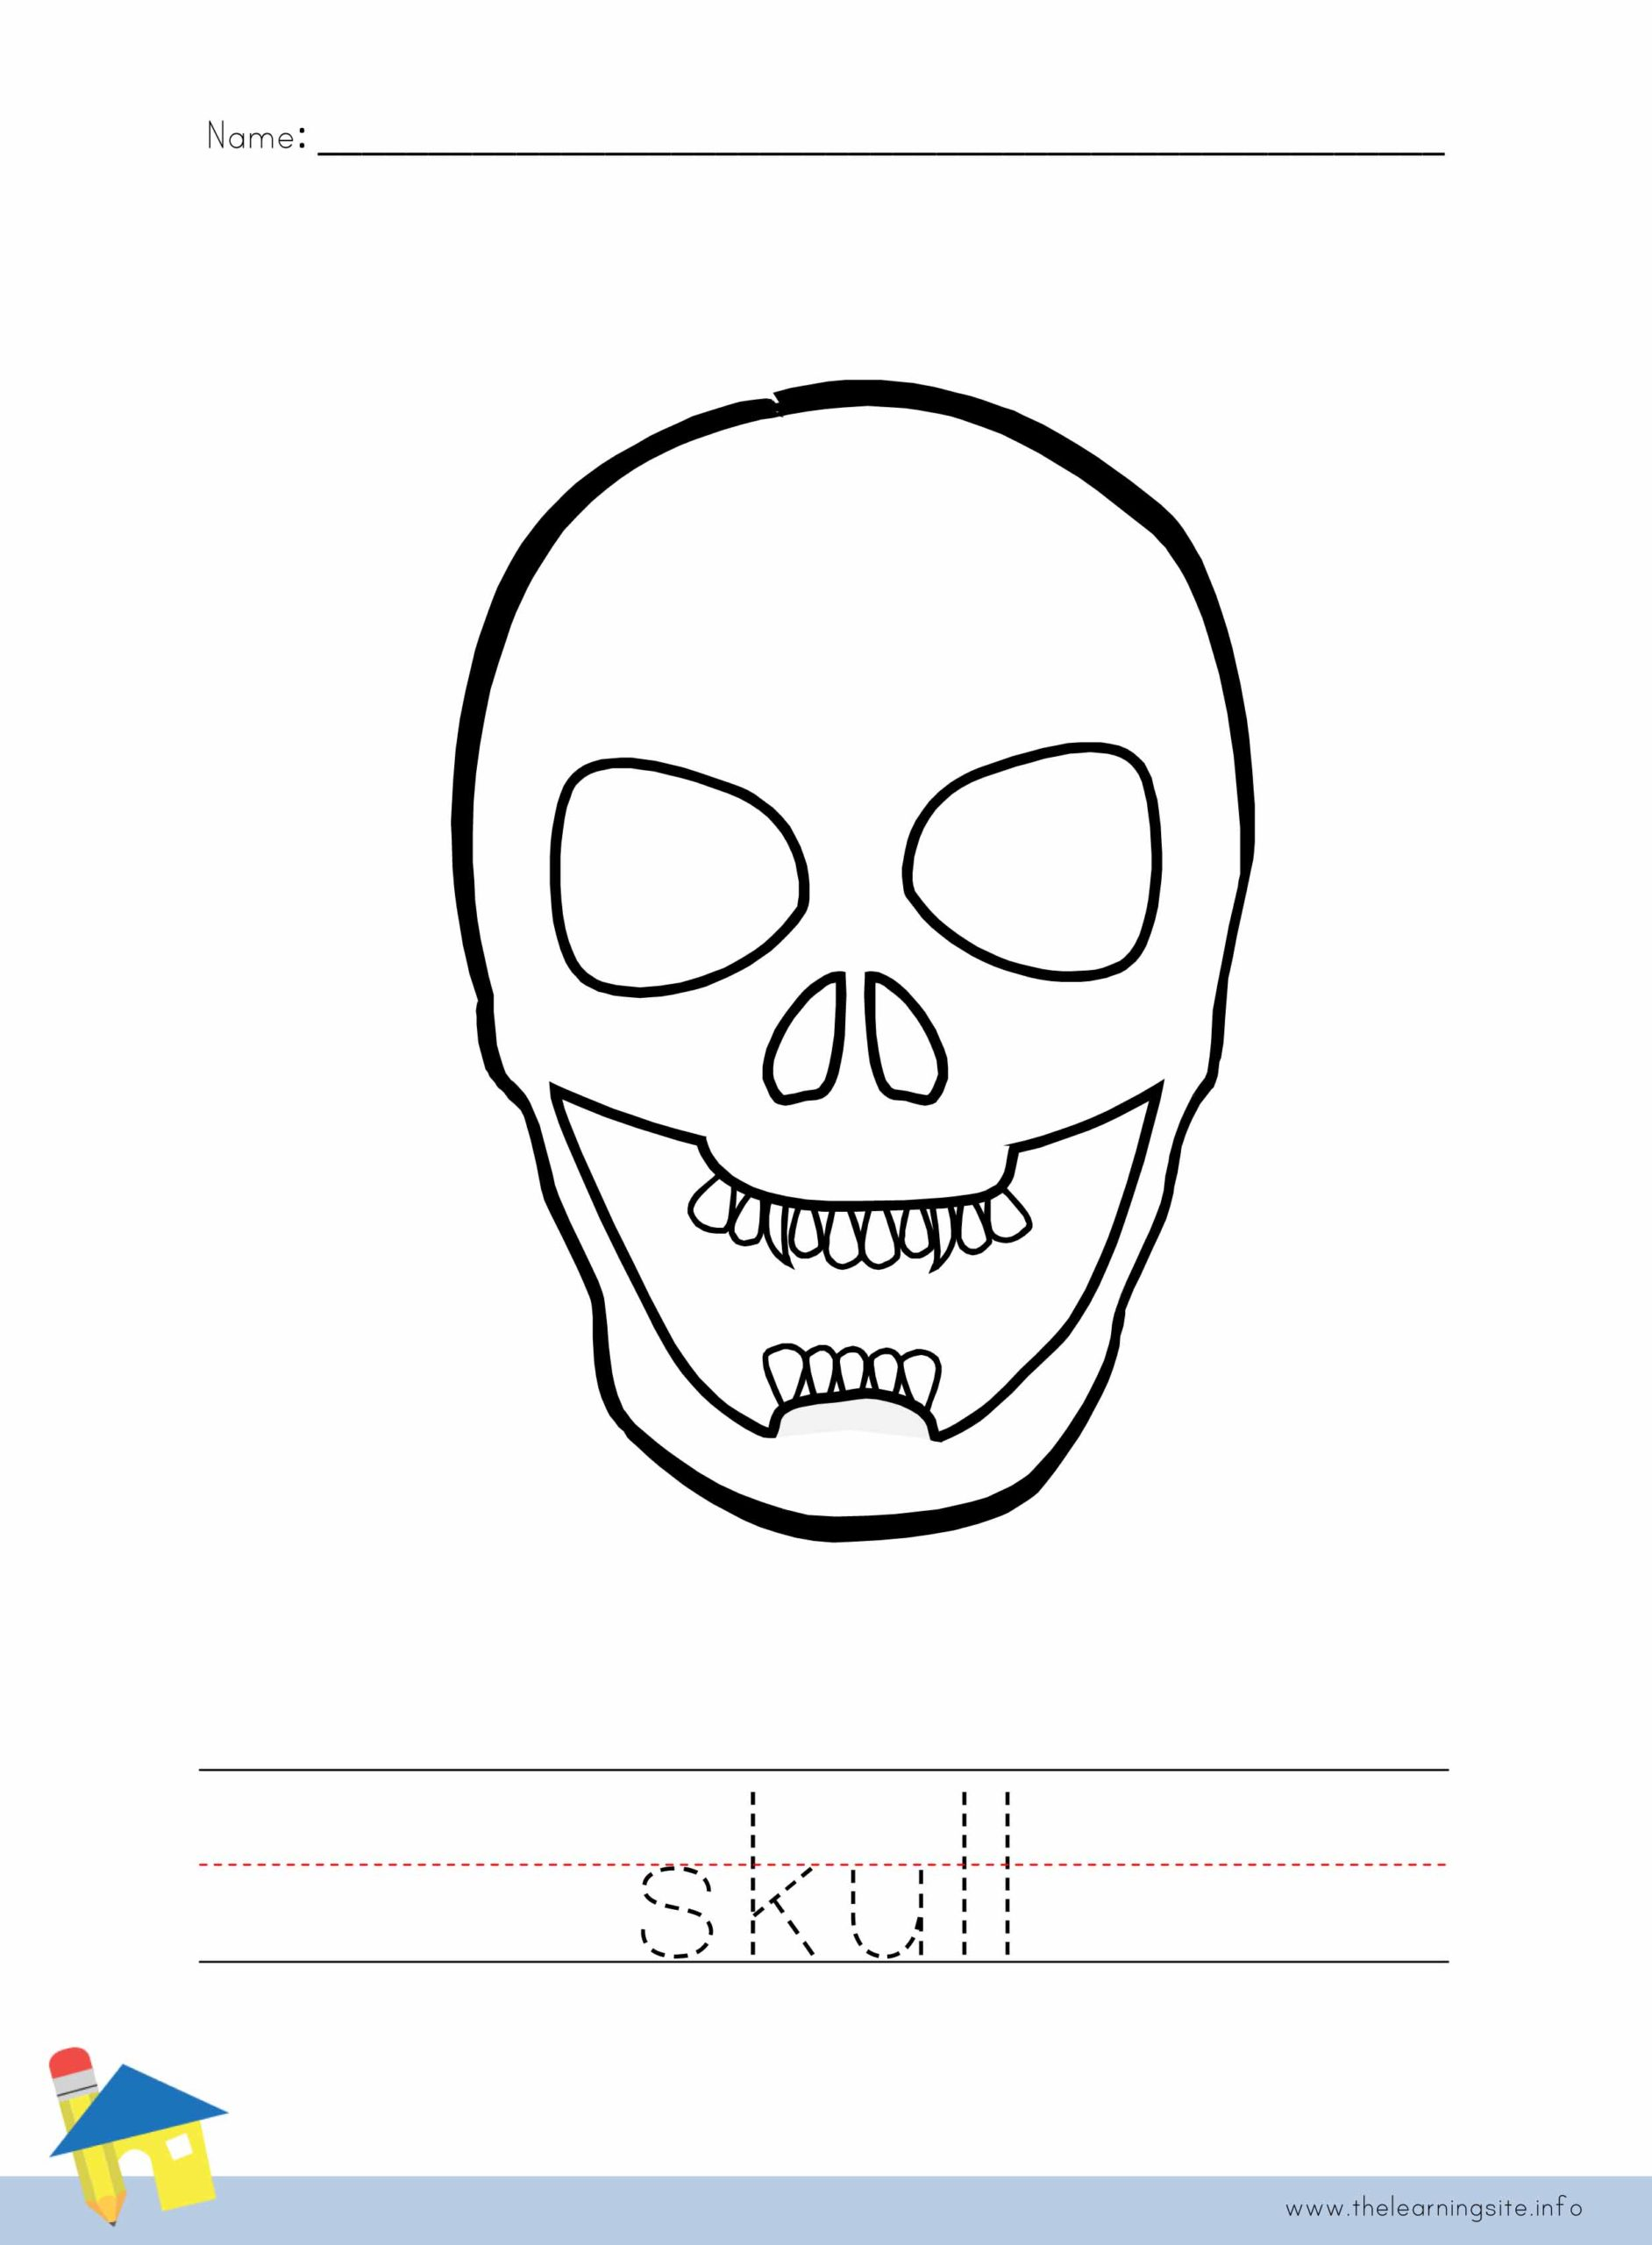 Skull Coloring Worksheet The Learning Site